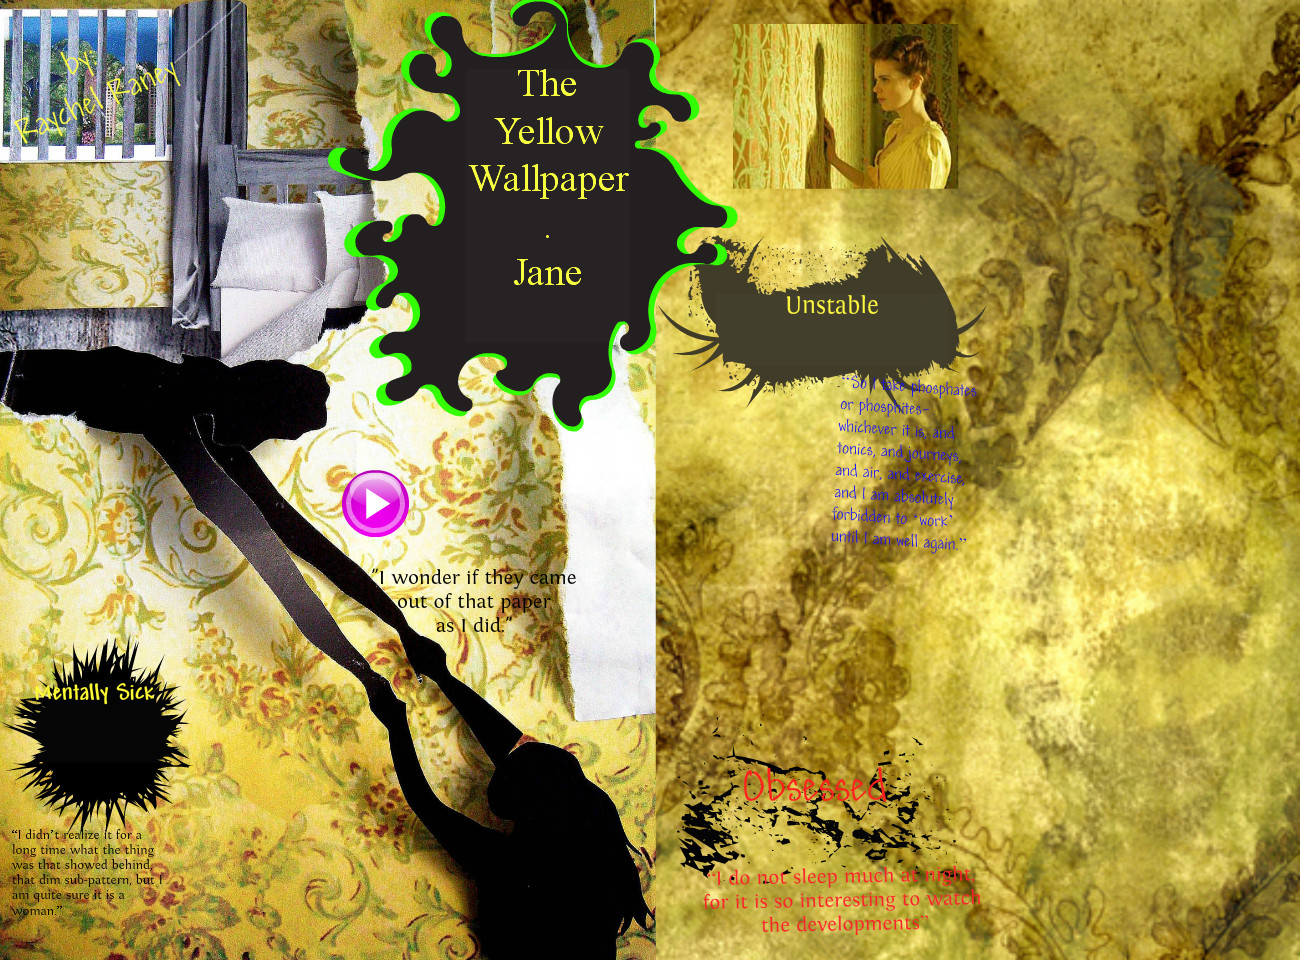 Free Download The Yellow Wallpaper Sparknotes Read The